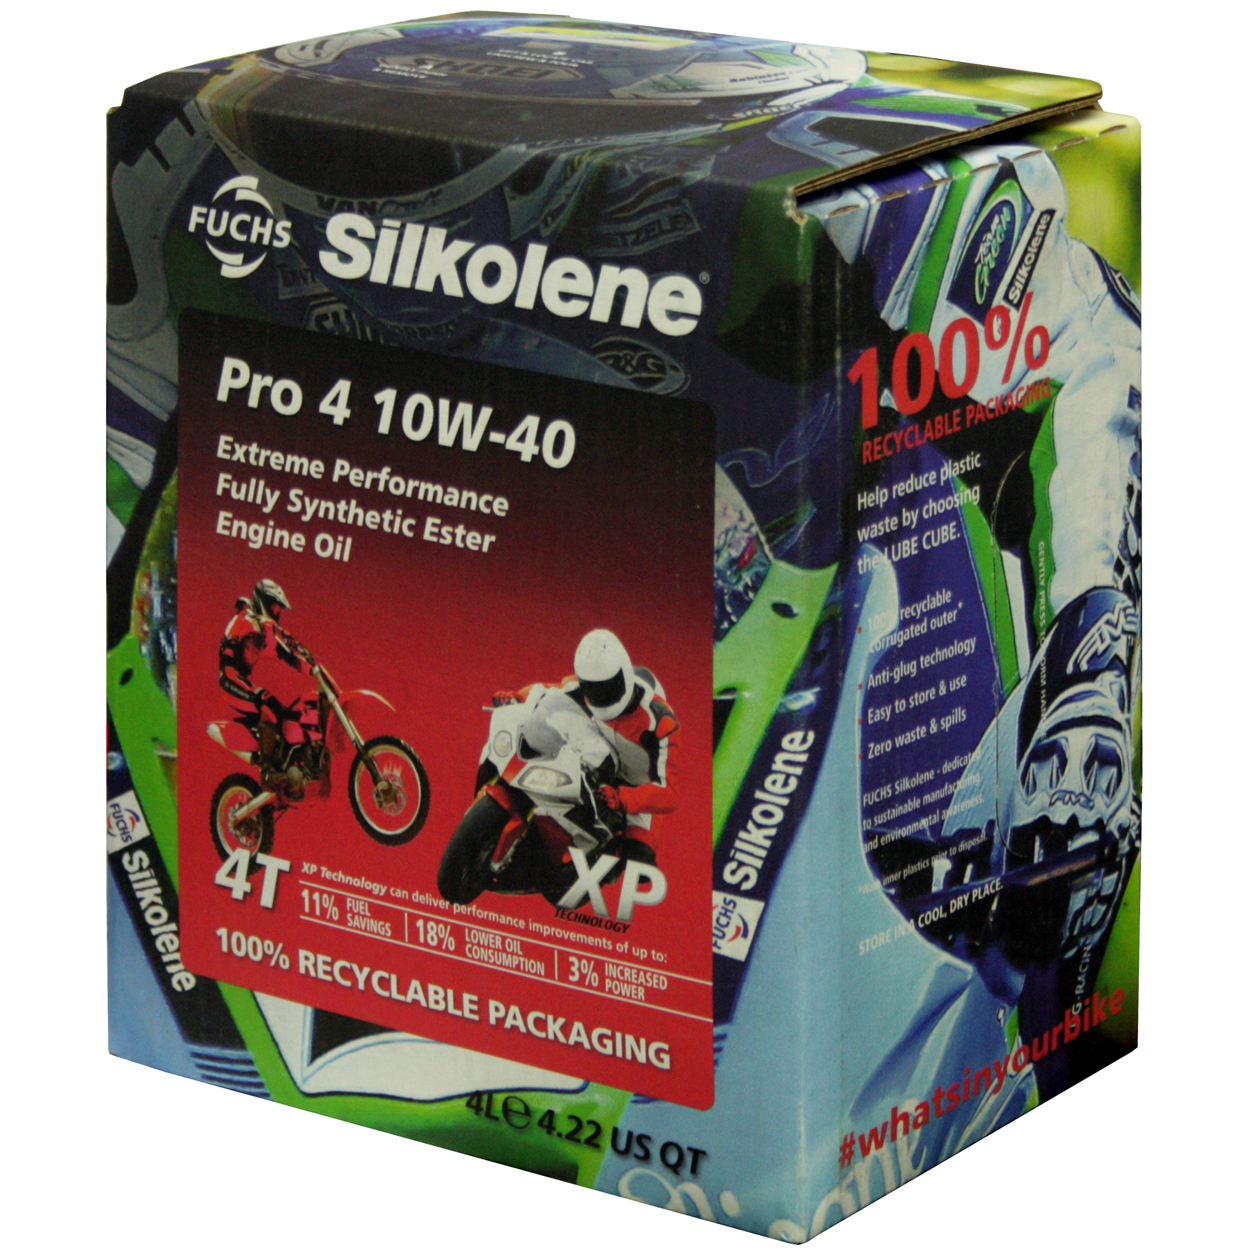 fuchs silkolne 100% recyclable packaning